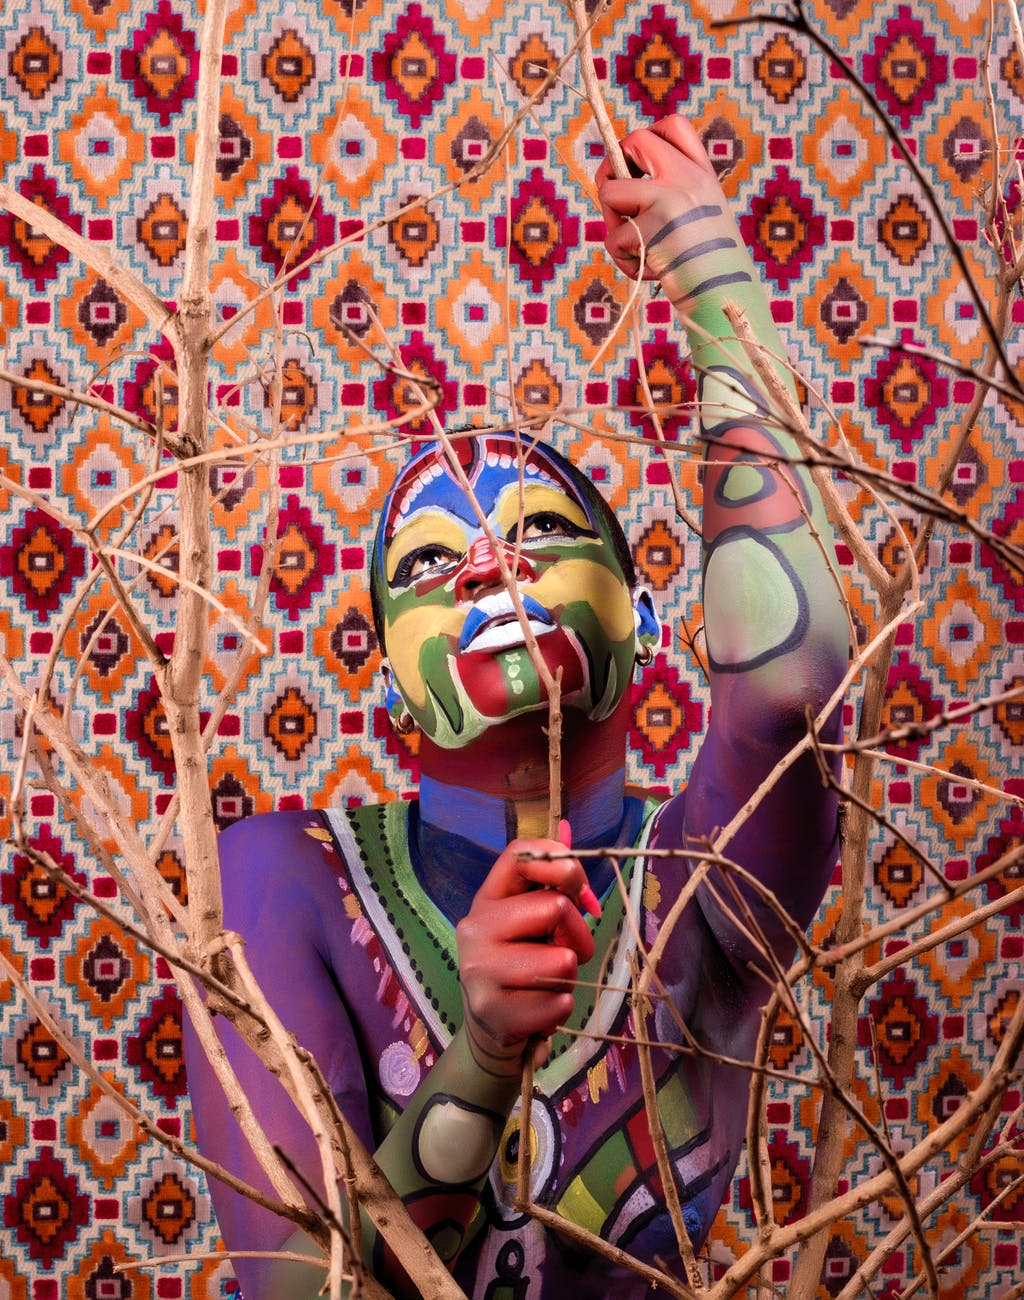 photo of person with face and body paint